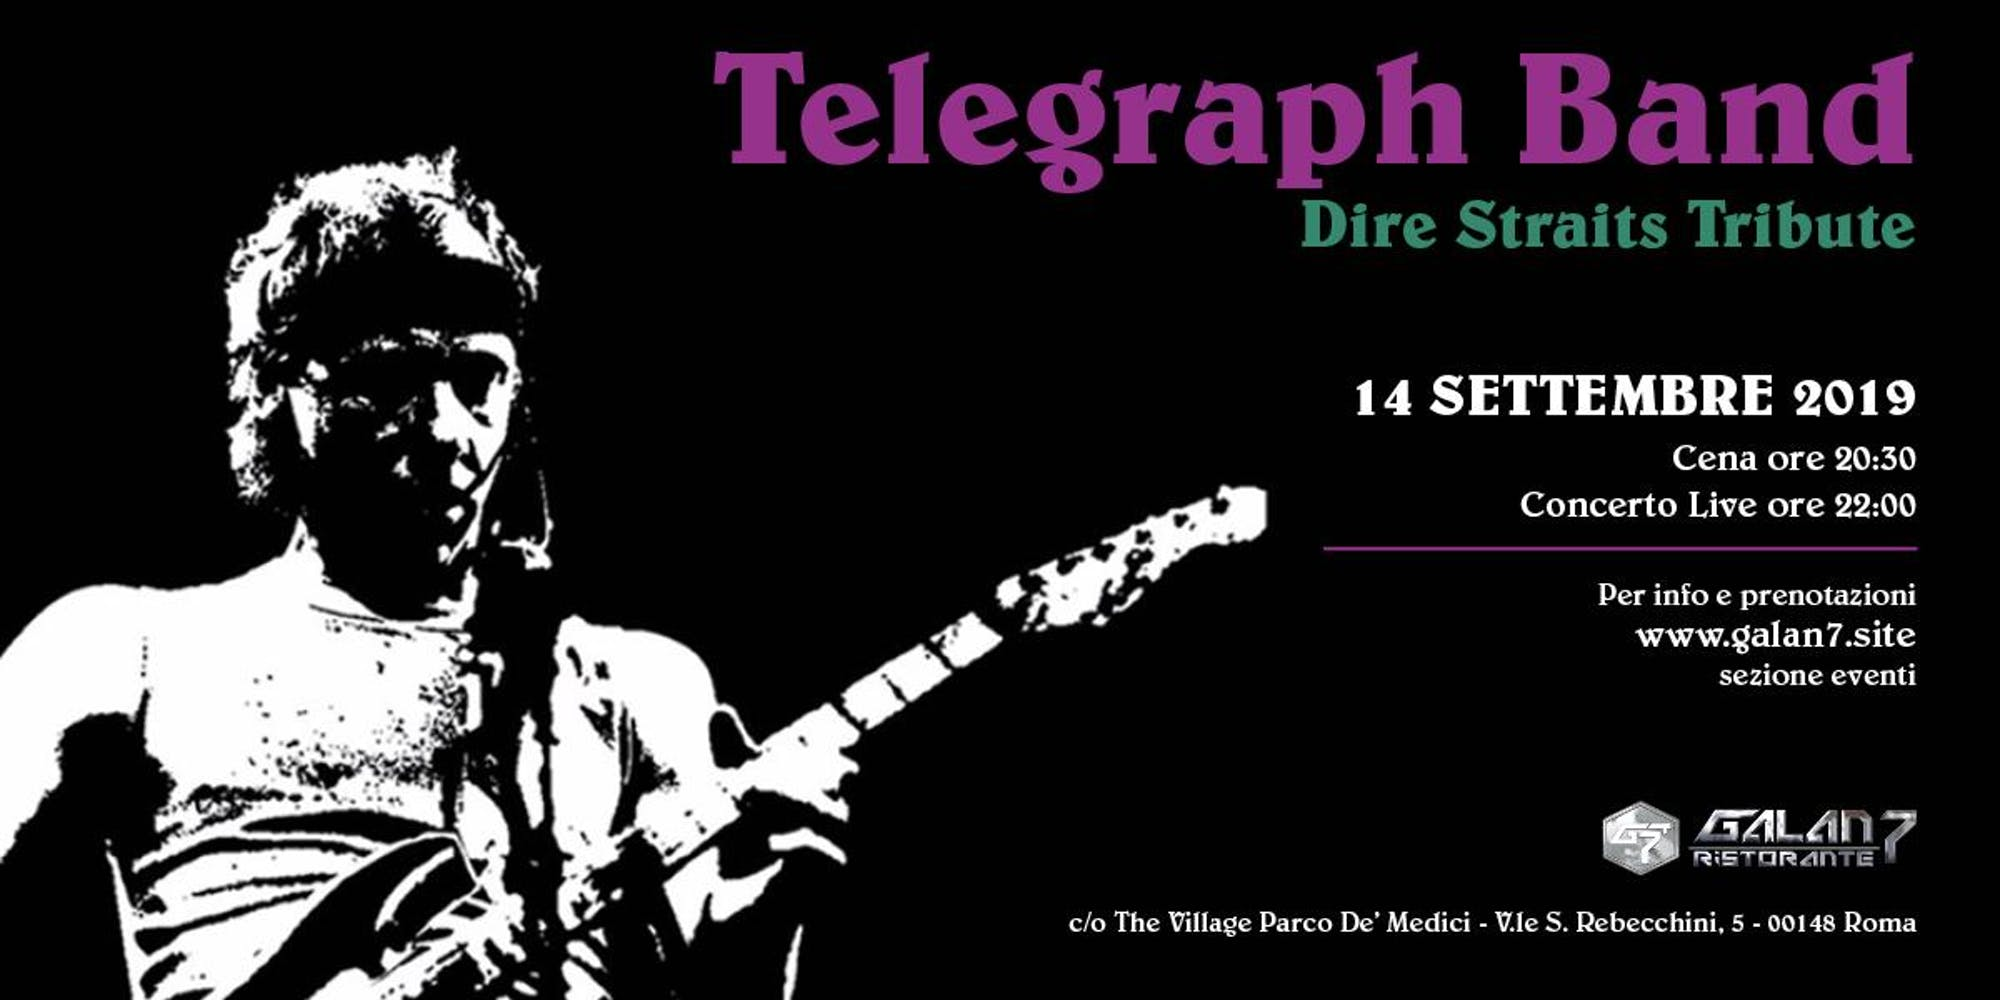 DIRE STRAITS TRIBUTE -TELEGRAPH BAND